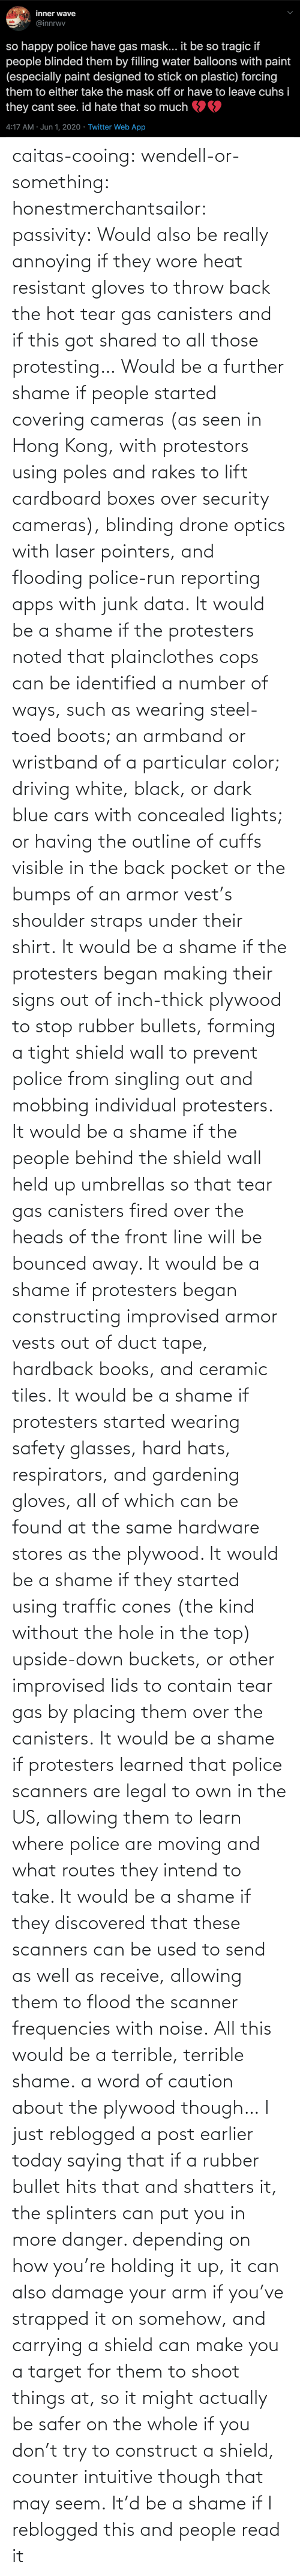 same: caitas-cooing:  wendell-or-something: honestmerchantsailor:  passivity: Would also be really annoying if they wore heat resistant gloves to throw back the hot tear gas canisters and if this got shared to all those protesting… Would be a further shame if people started covering cameras (as seen in Hong Kong, with protestors using poles and rakes to lift cardboard boxes over security cameras), blinding drone optics with laser pointers, and flooding police-run reporting apps with junk data. It would be a shame if the protesters noted that plainclothes cops can be identified a number of ways, such as wearing steel-toed boots; an armband or wristband of a particular color; driving white, black, or dark blue cars with concealed lights; or having the outline of cuffs visible in the back pocket or the bumps of an armor vest's shoulder straps under their shirt. It would be a shame if the protesters began making their signs out of inch-thick plywood to stop rubber bullets, forming a tight shield wall to prevent police from singling out and mobbing individual protesters. It would be a shame if the people behind the shield wall held up umbrellas so that tear gas canisters fired over the heads of the front line will be bounced away. It would be a shame if protesters began constructing improvised armor vests out of duct tape, hardback books, and ceramic tiles. It would be a shame if protesters started wearing safety glasses, hard hats, respirators, and gardening gloves, all of which can be found at the same hardware stores as the plywood. It would be a shame if they started using traffic cones (the kind without the hole in the top) upside-down buckets, or other improvised lids to contain tear gas by placing them over the canisters. It would be a shame if protesters learned that police scanners are legal to own in the US, allowing them to learn where police are moving and what routes they intend to take. It would be a shame if they discovered that these scanners can be used to send as well as receive, allowing them to flood the scanner frequencies with noise. All this would be a terrible, terrible shame.    a word of caution about the plywood though… I just reblogged a post earlier today saying that if a rubber bullet hits that and shatters it, the splinters can put you in more danger. depending on how you're holding it up, it can also damage your arm if you've strapped it on somehow, and carrying a shield can make you a target for them to shoot things at, so it might actually be safer on the whole if you don't try to construct a shield, counter intuitive though that may seem.    It'd be a shame if I reblogged this and people read it